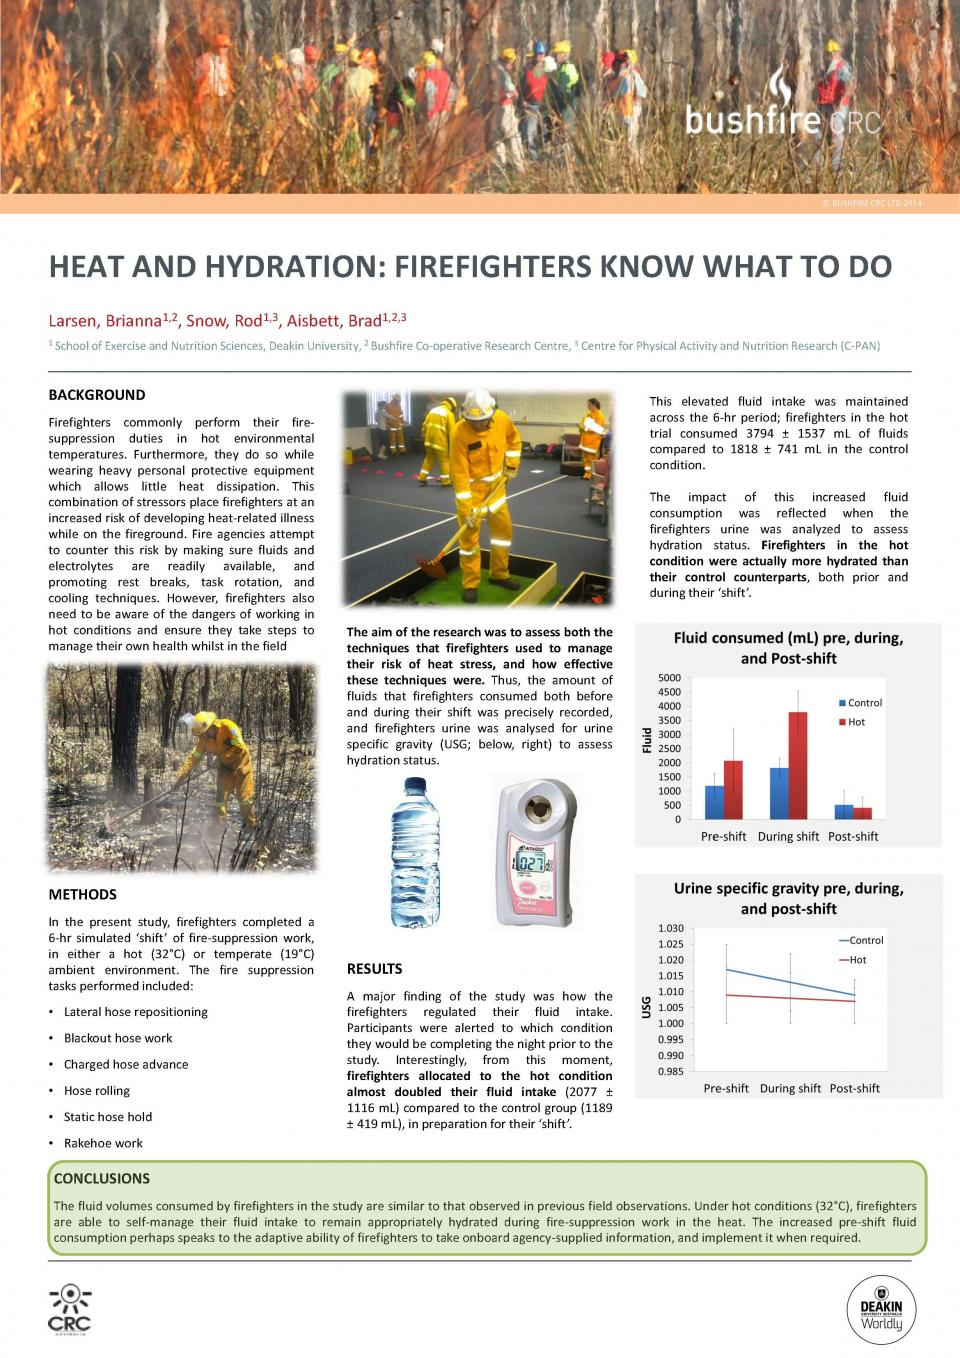 Heat and hydration: Firefighters know what to do